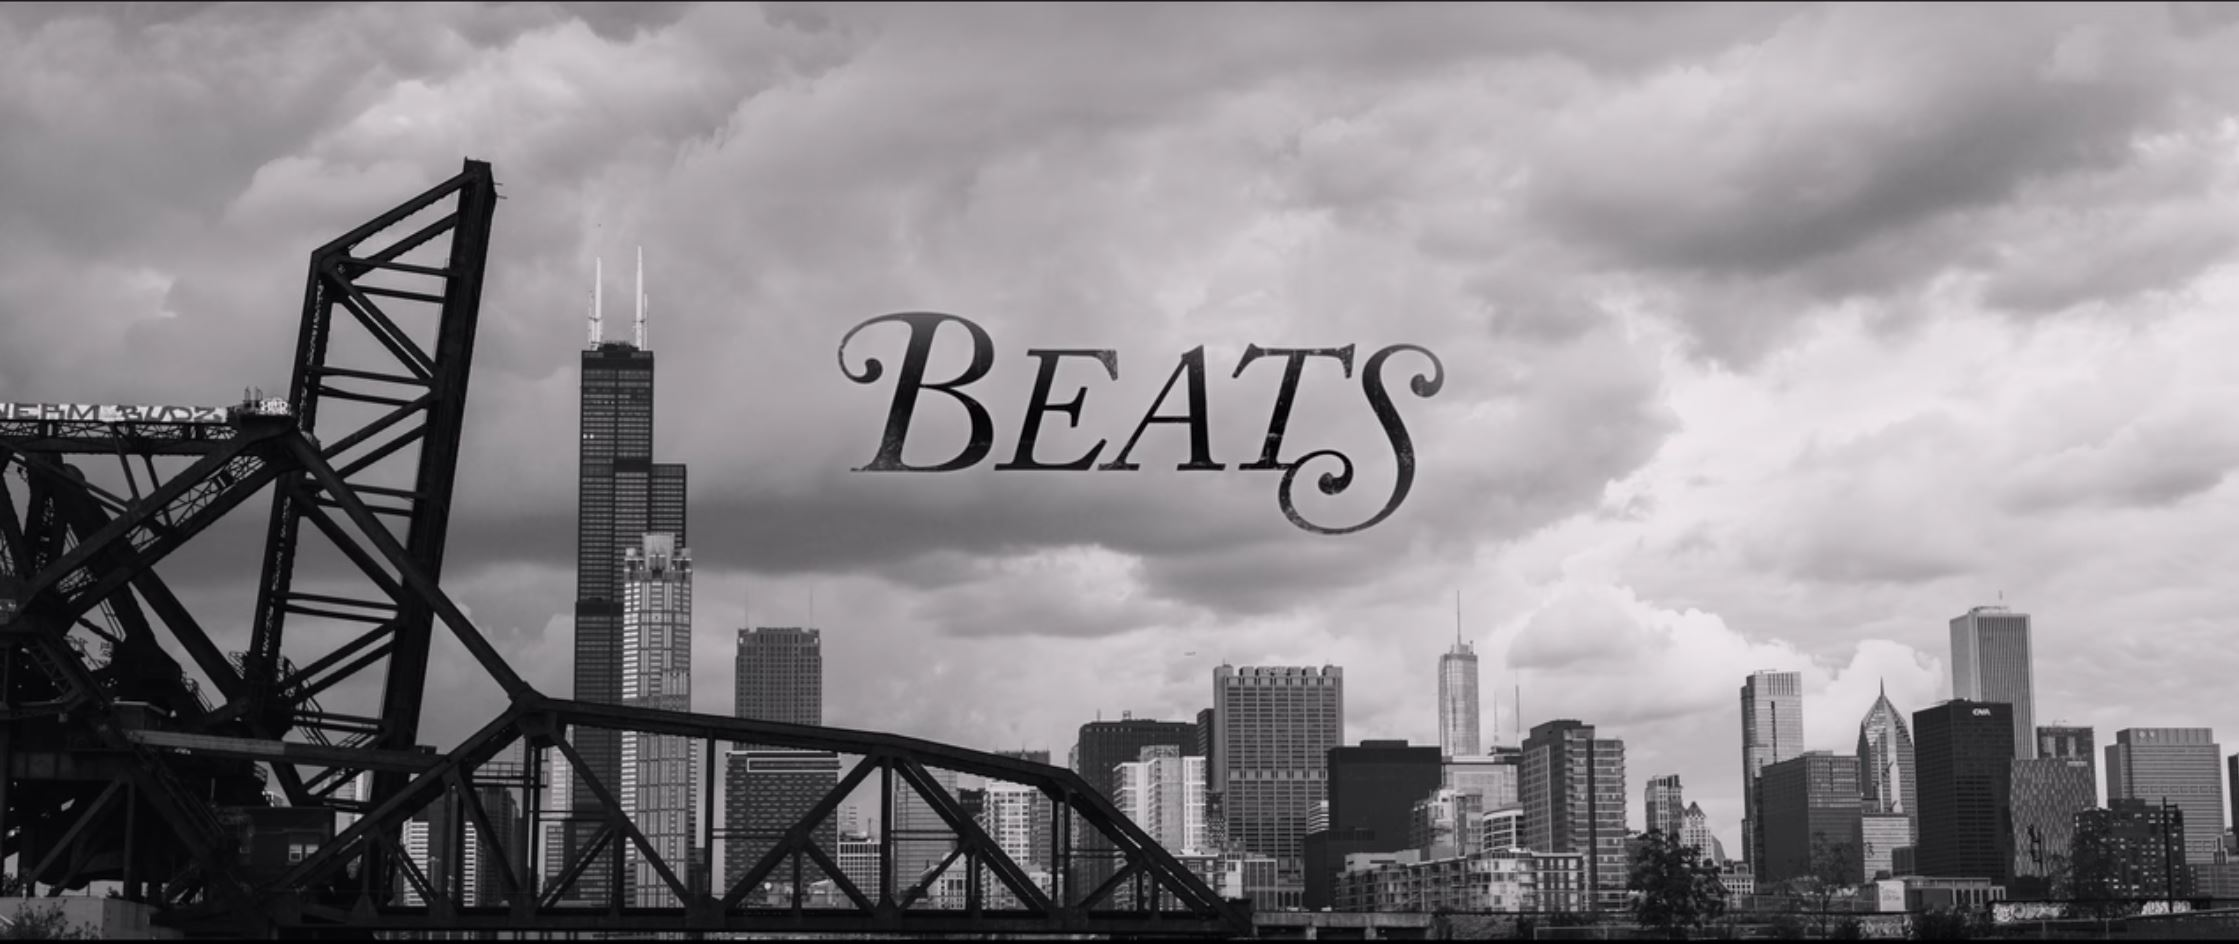 image of Netflix film title 'Beats' across Chicago skyline